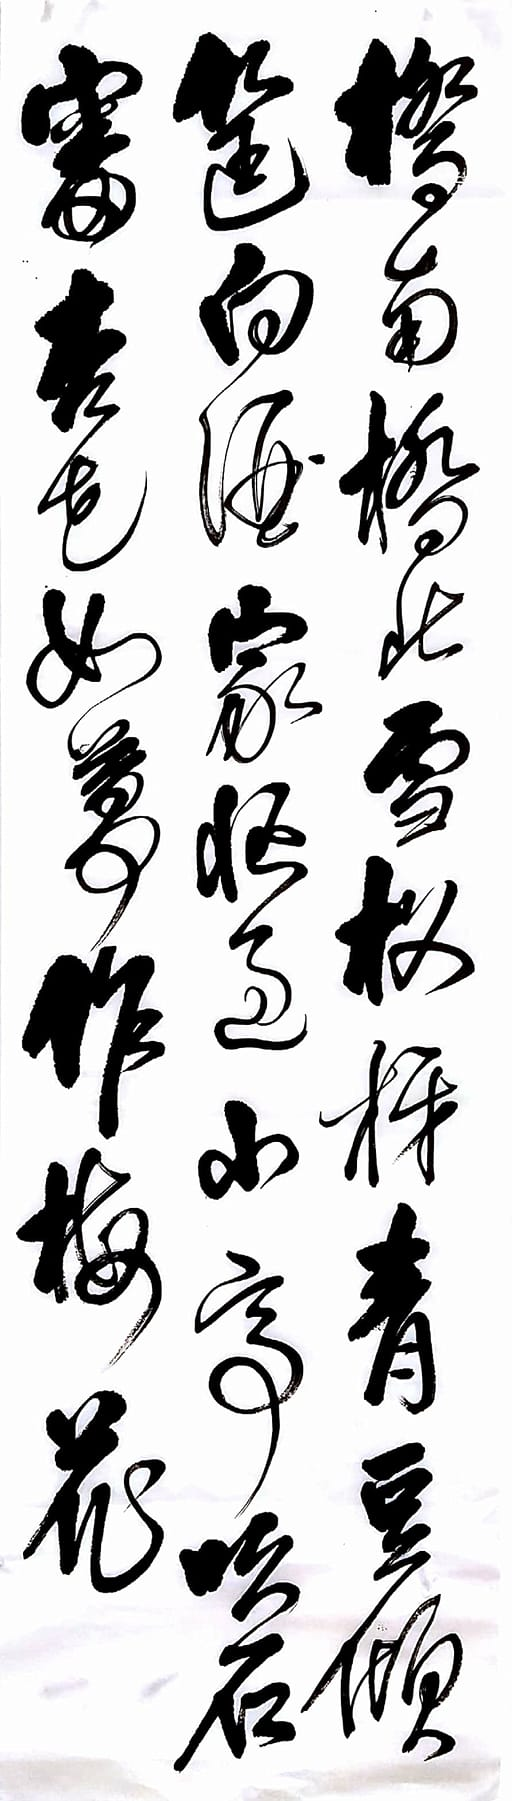 Calligraphy,Font,Art,Black-and-white